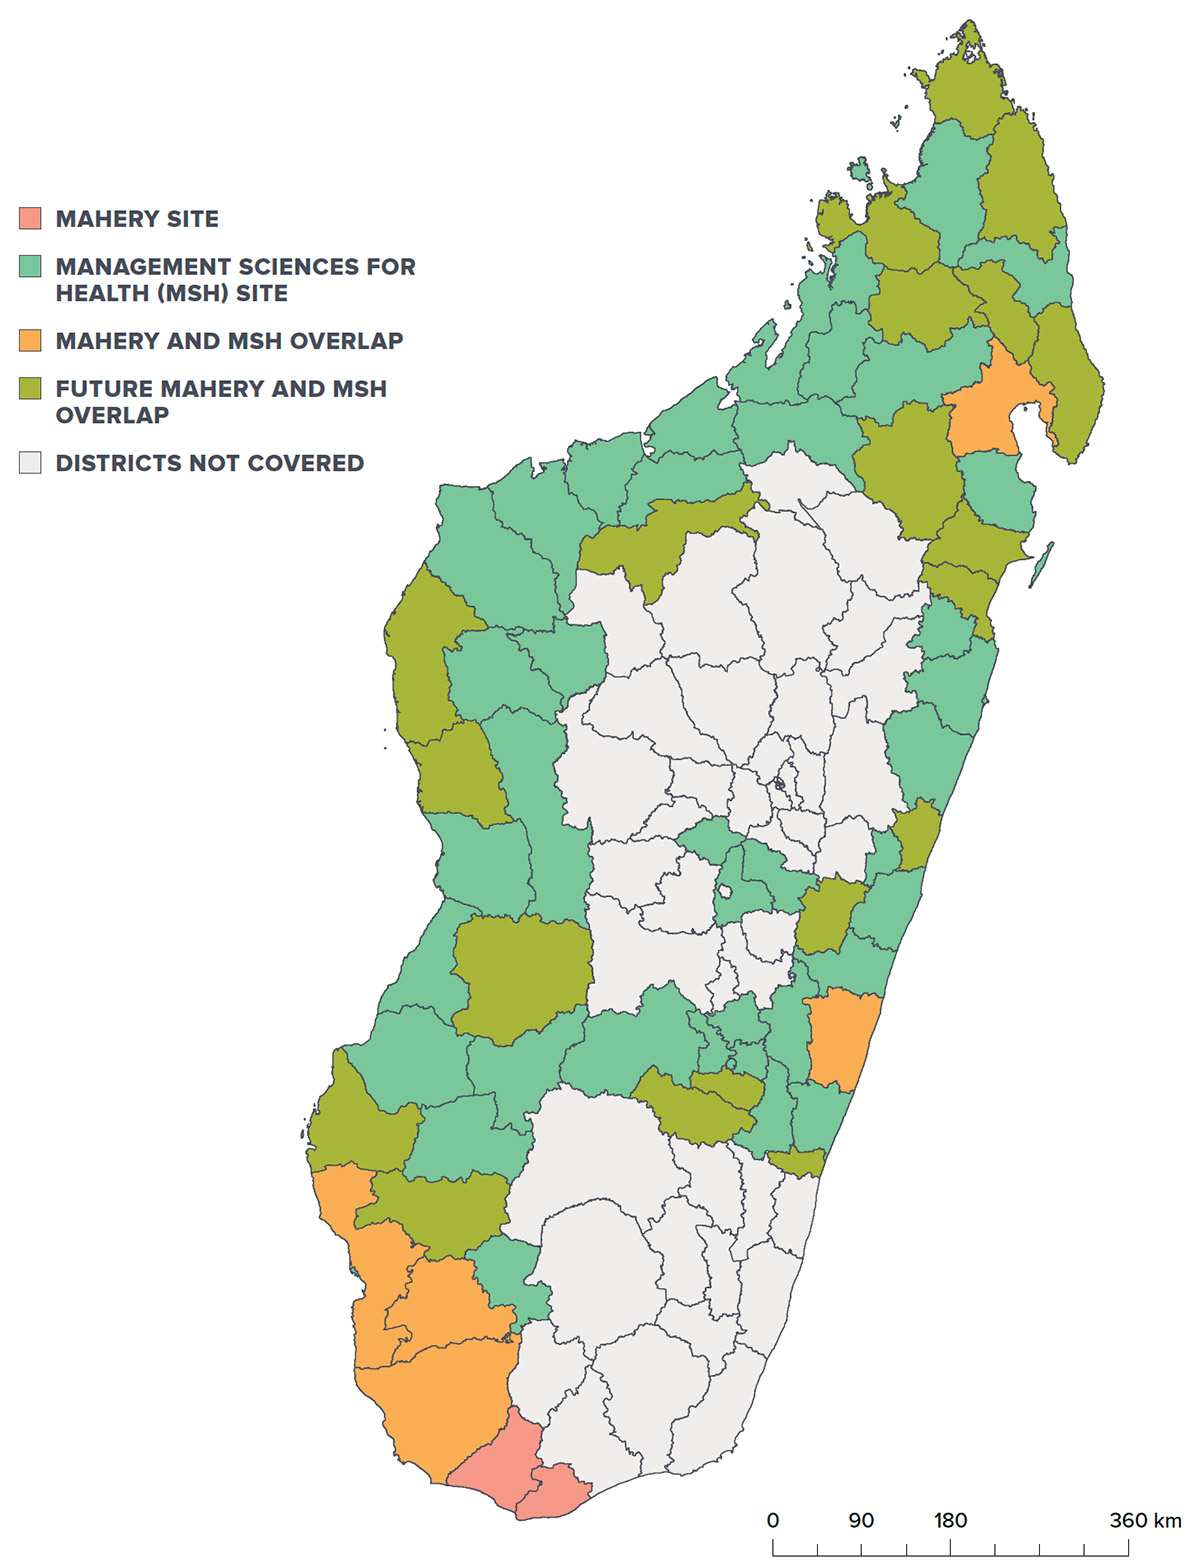 Outlined map of Madagascar with districts colored in based on study activity in that area